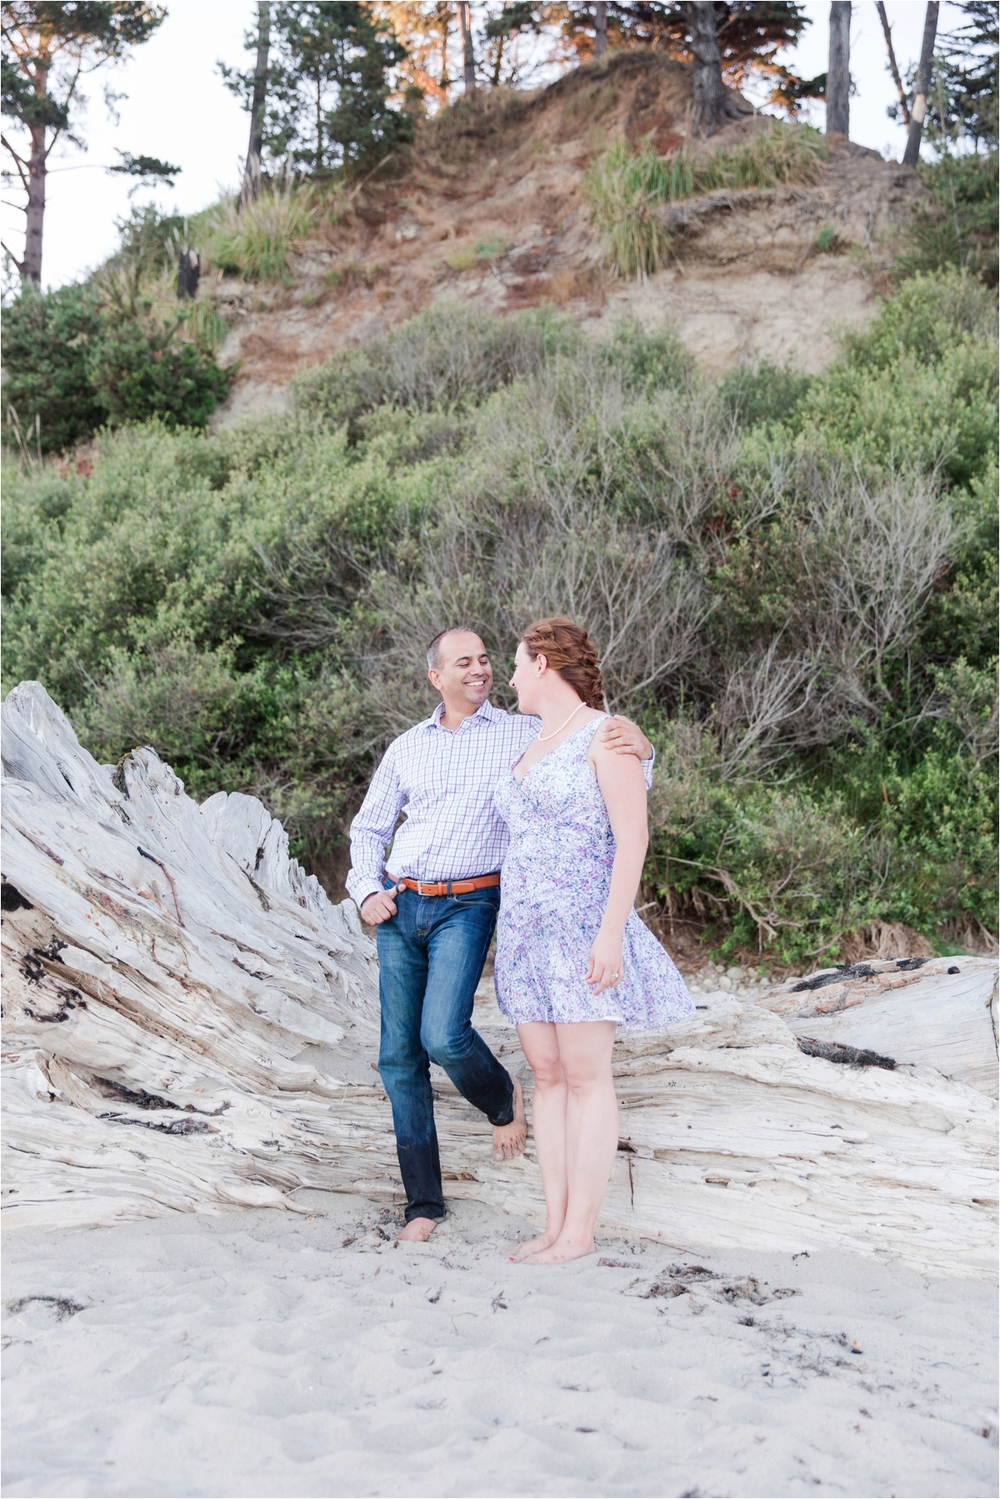 New Brighton beach engagement pictures by Briana Calderon Photography_0275.jpg